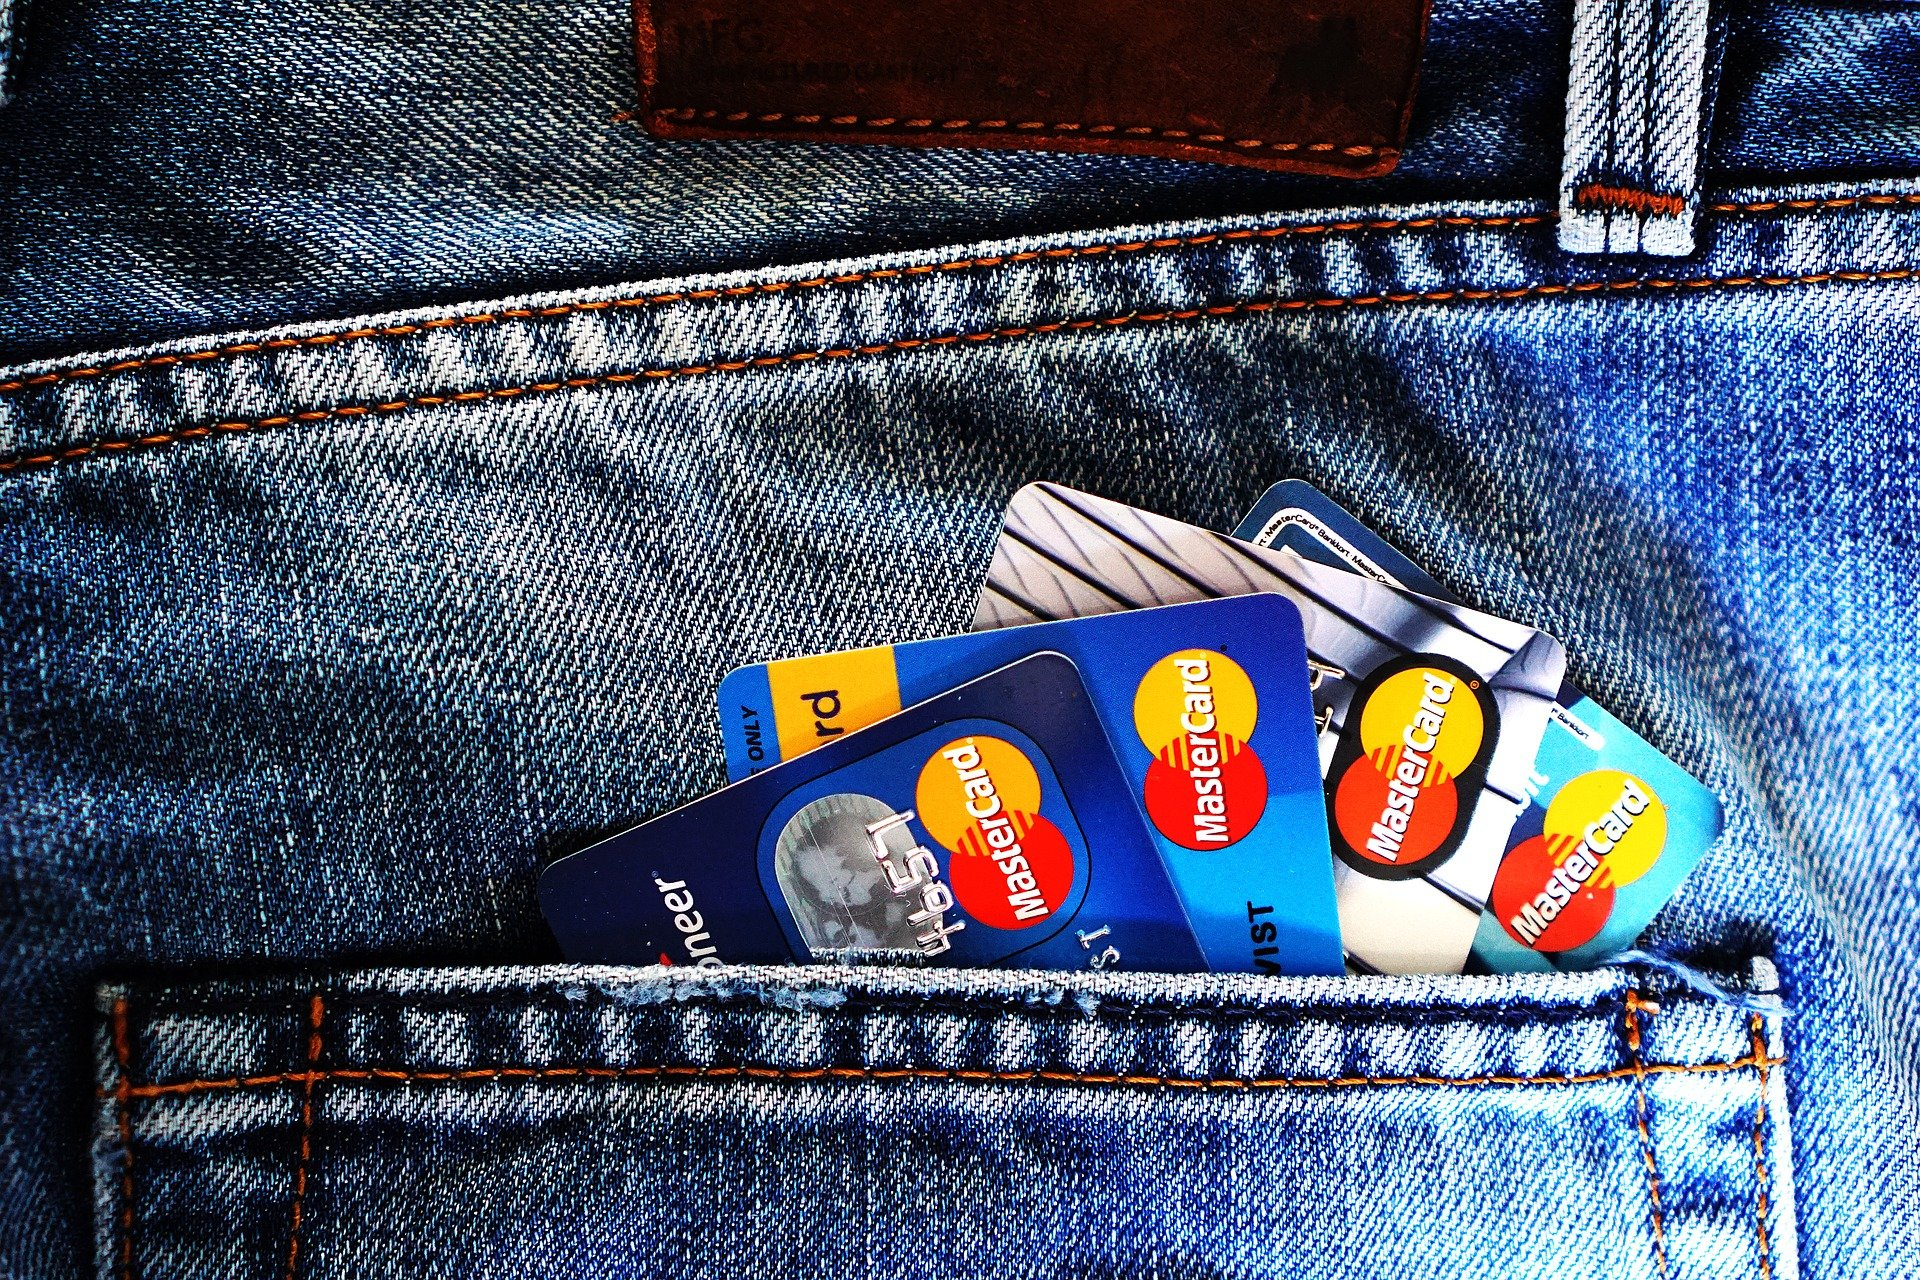 Pocket filled with credit cards.   Photo: Pixabay/TheDigitalWay